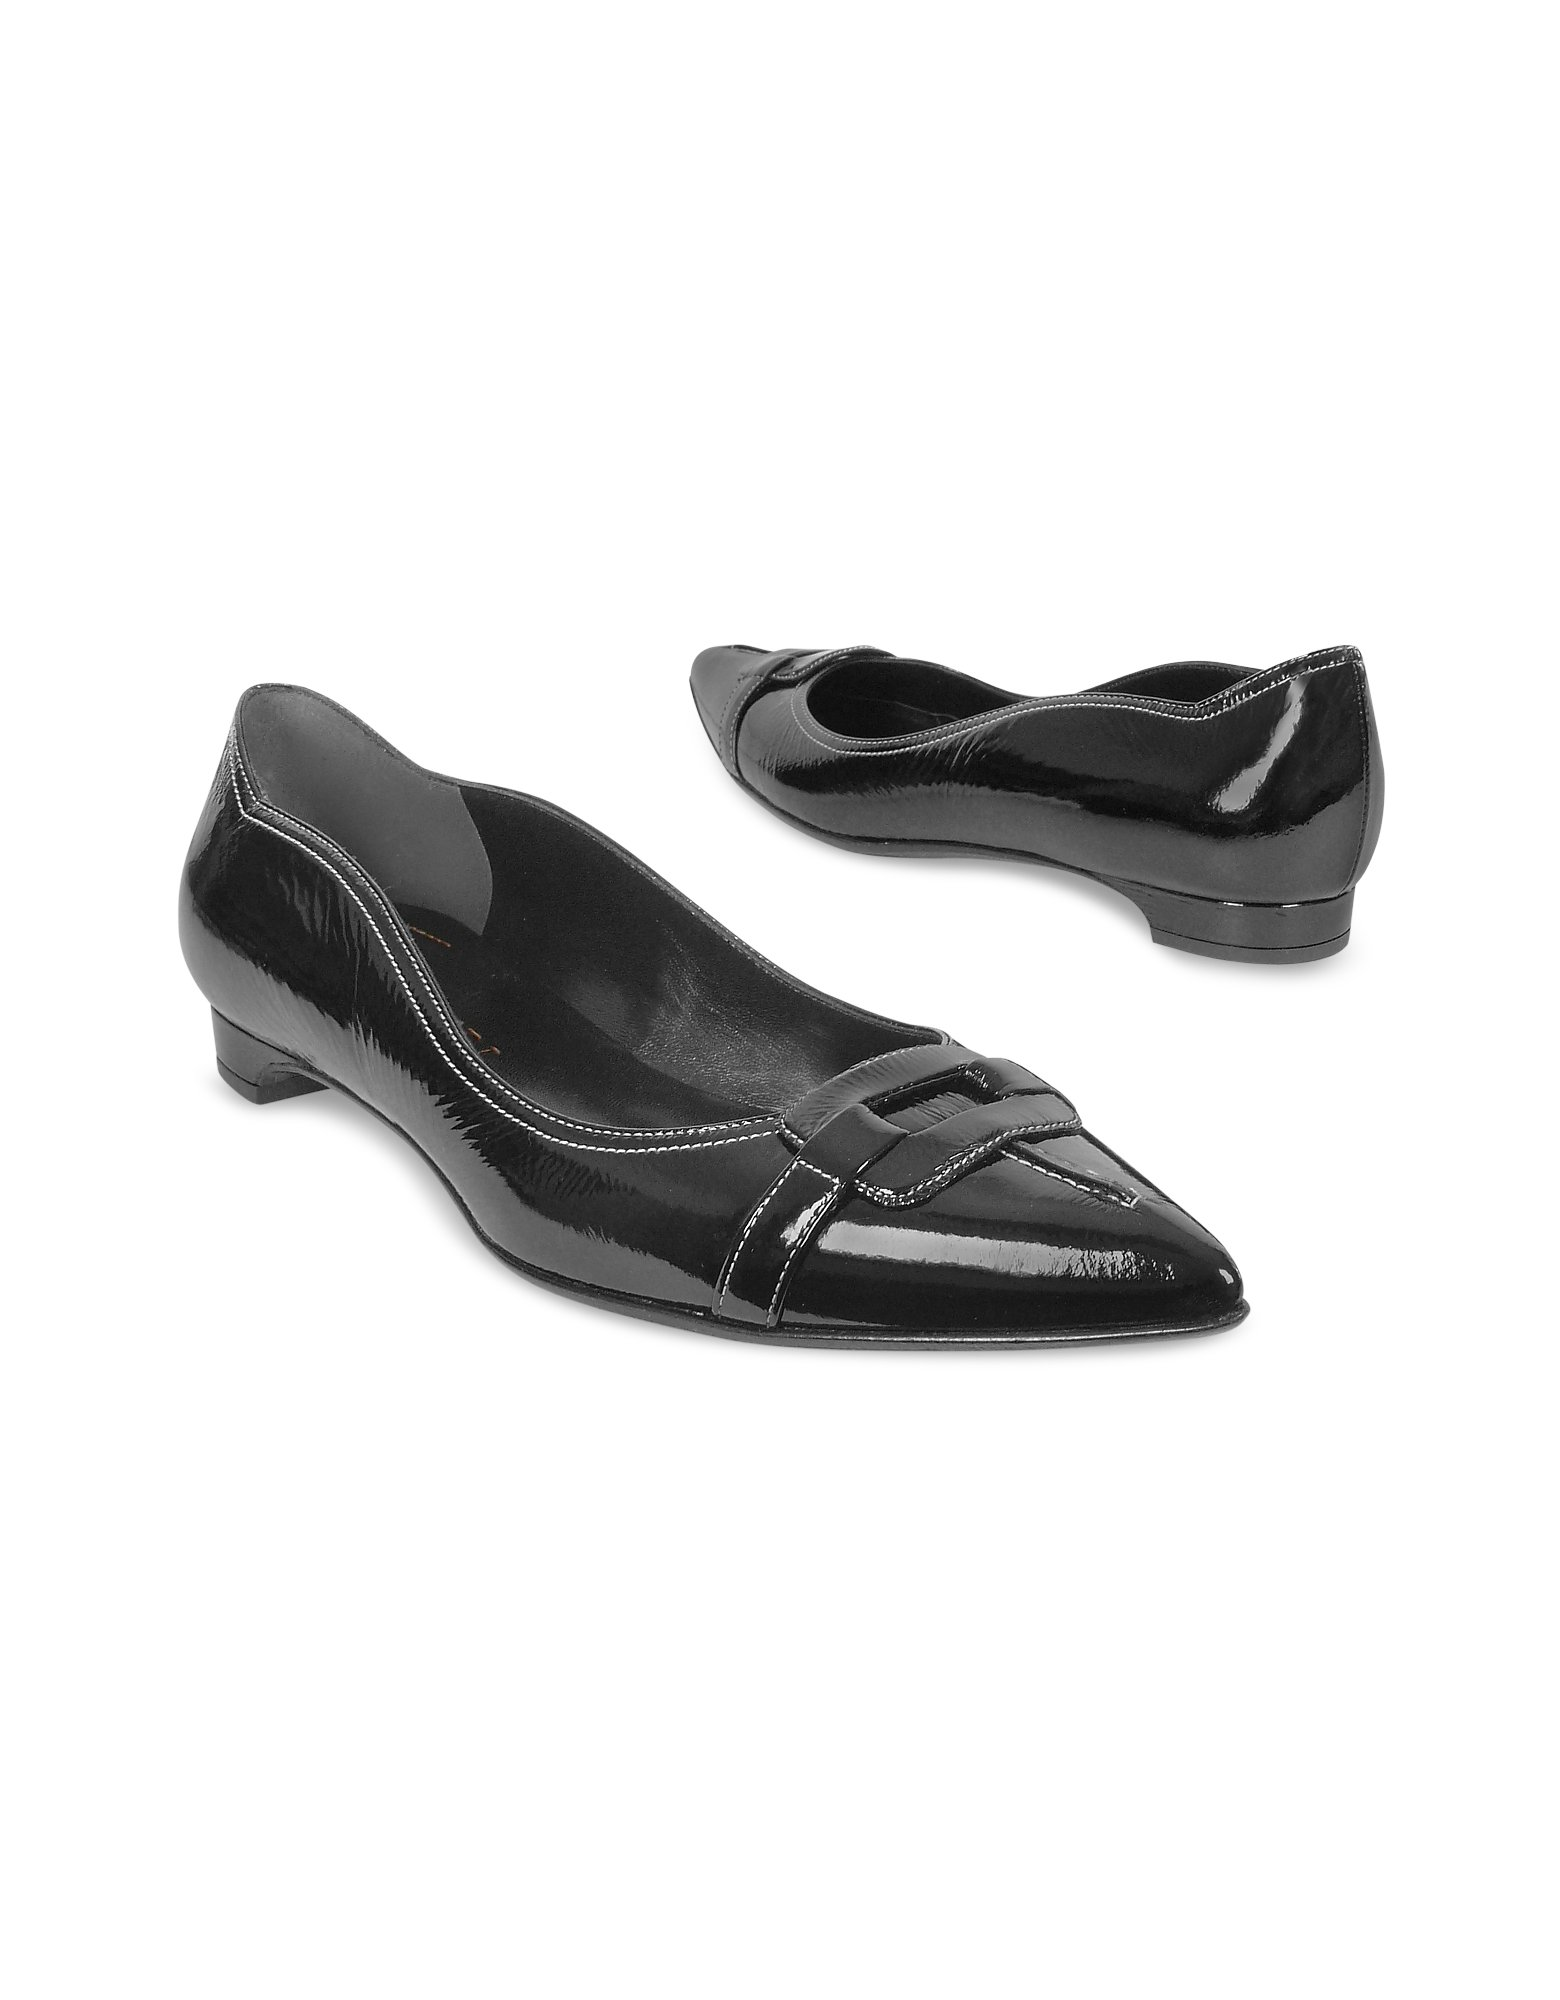 forzieri black patent leather ballerina flat shoes in